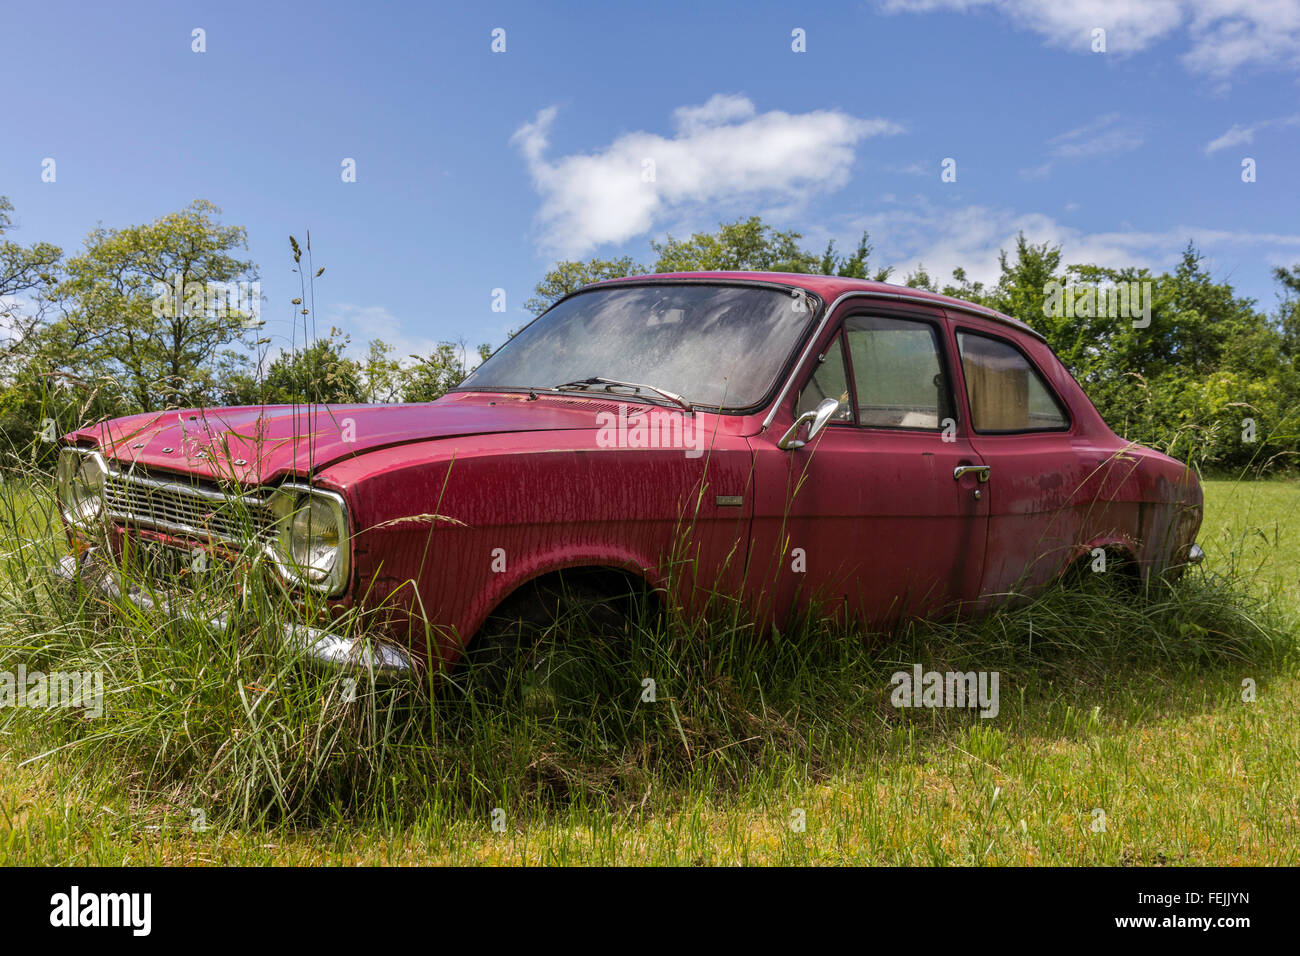 Ford Escort Mk1 Stock Photos & Ford Escort Mk1 Stock Images - Alamy